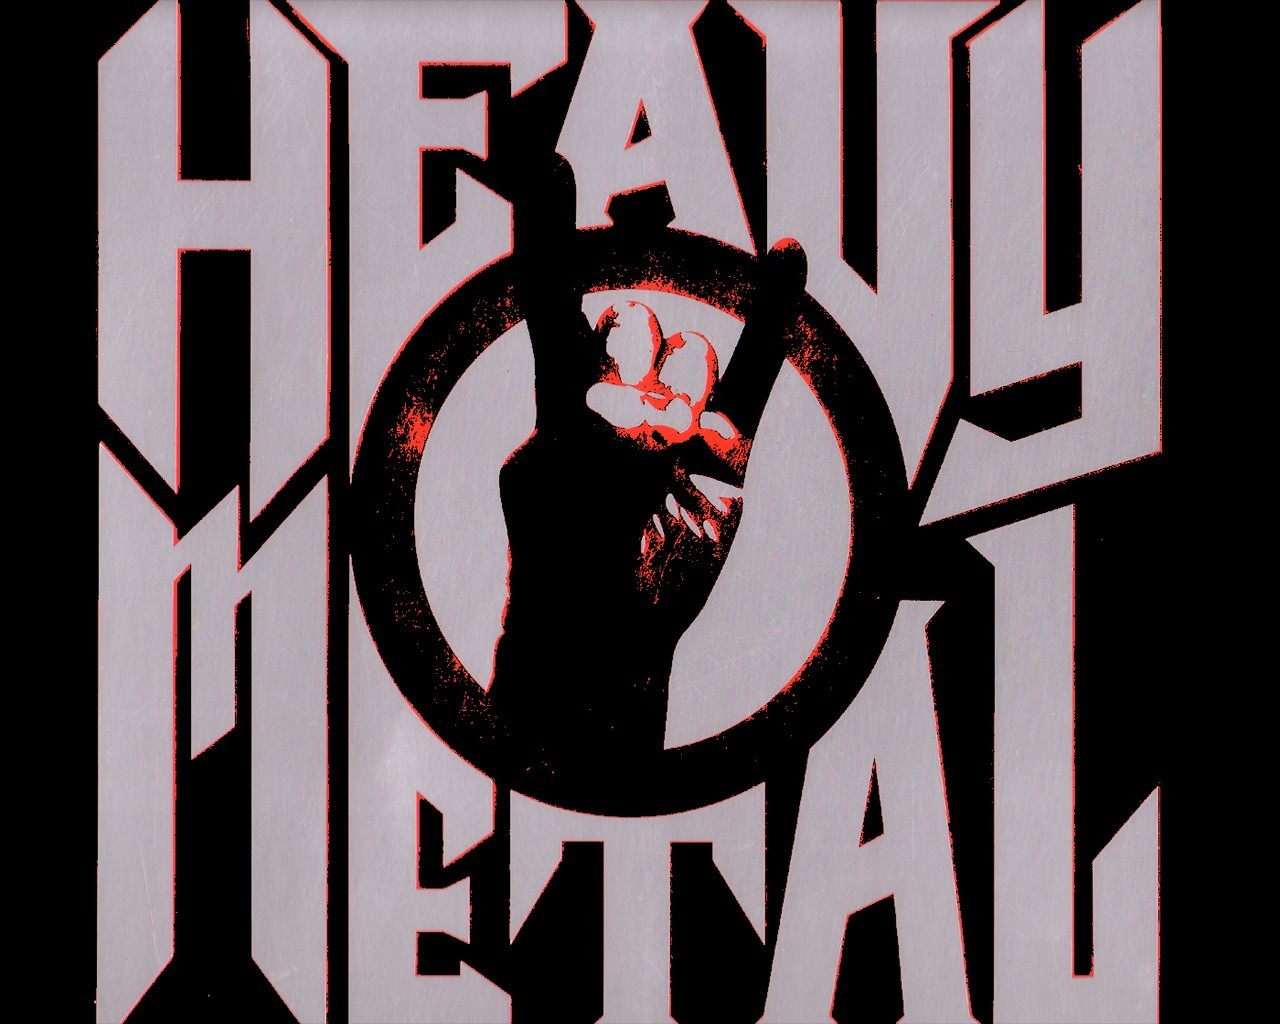 Heavy Metal Wallpapers Comics Hq Heavy Metal Pictures 4k Wallpapers 2019